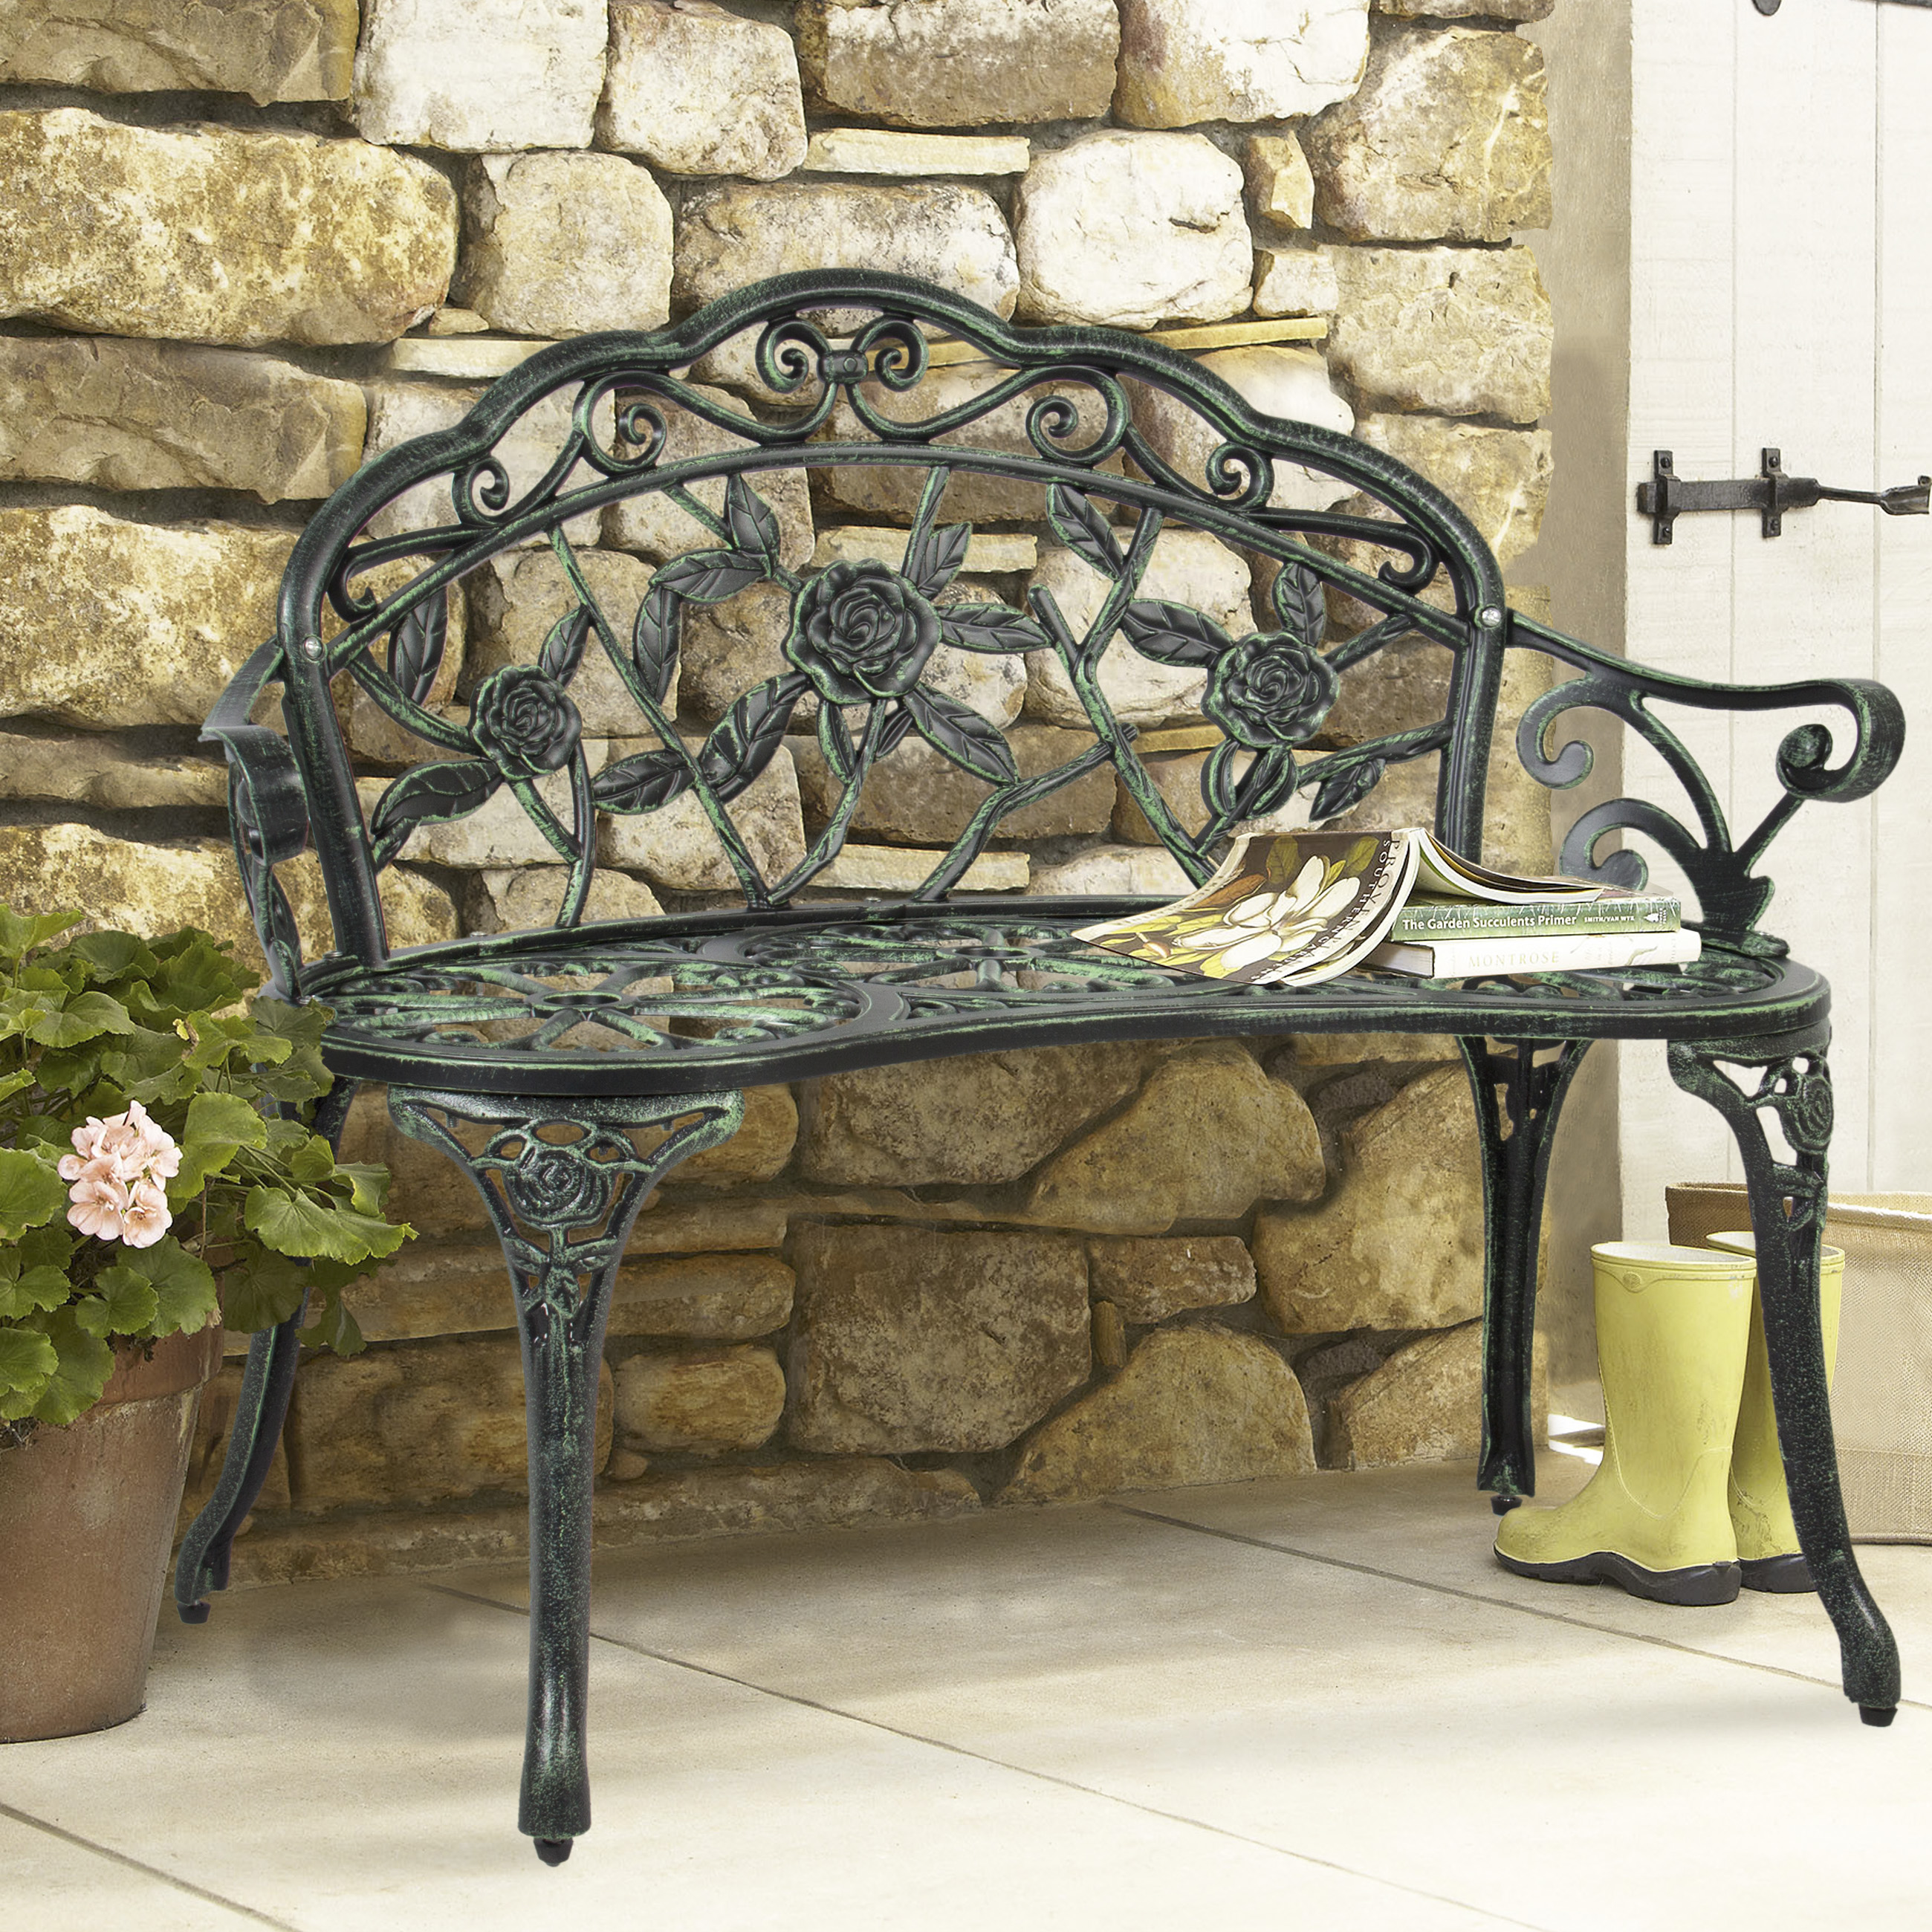 Surprising Best Choice Products 39In Outdoor Floral Rose Accented Metal Garden Patio Park Bench W Antique Finish Black Onthecornerstone Fun Painted Chair Ideas Images Onthecornerstoneorg